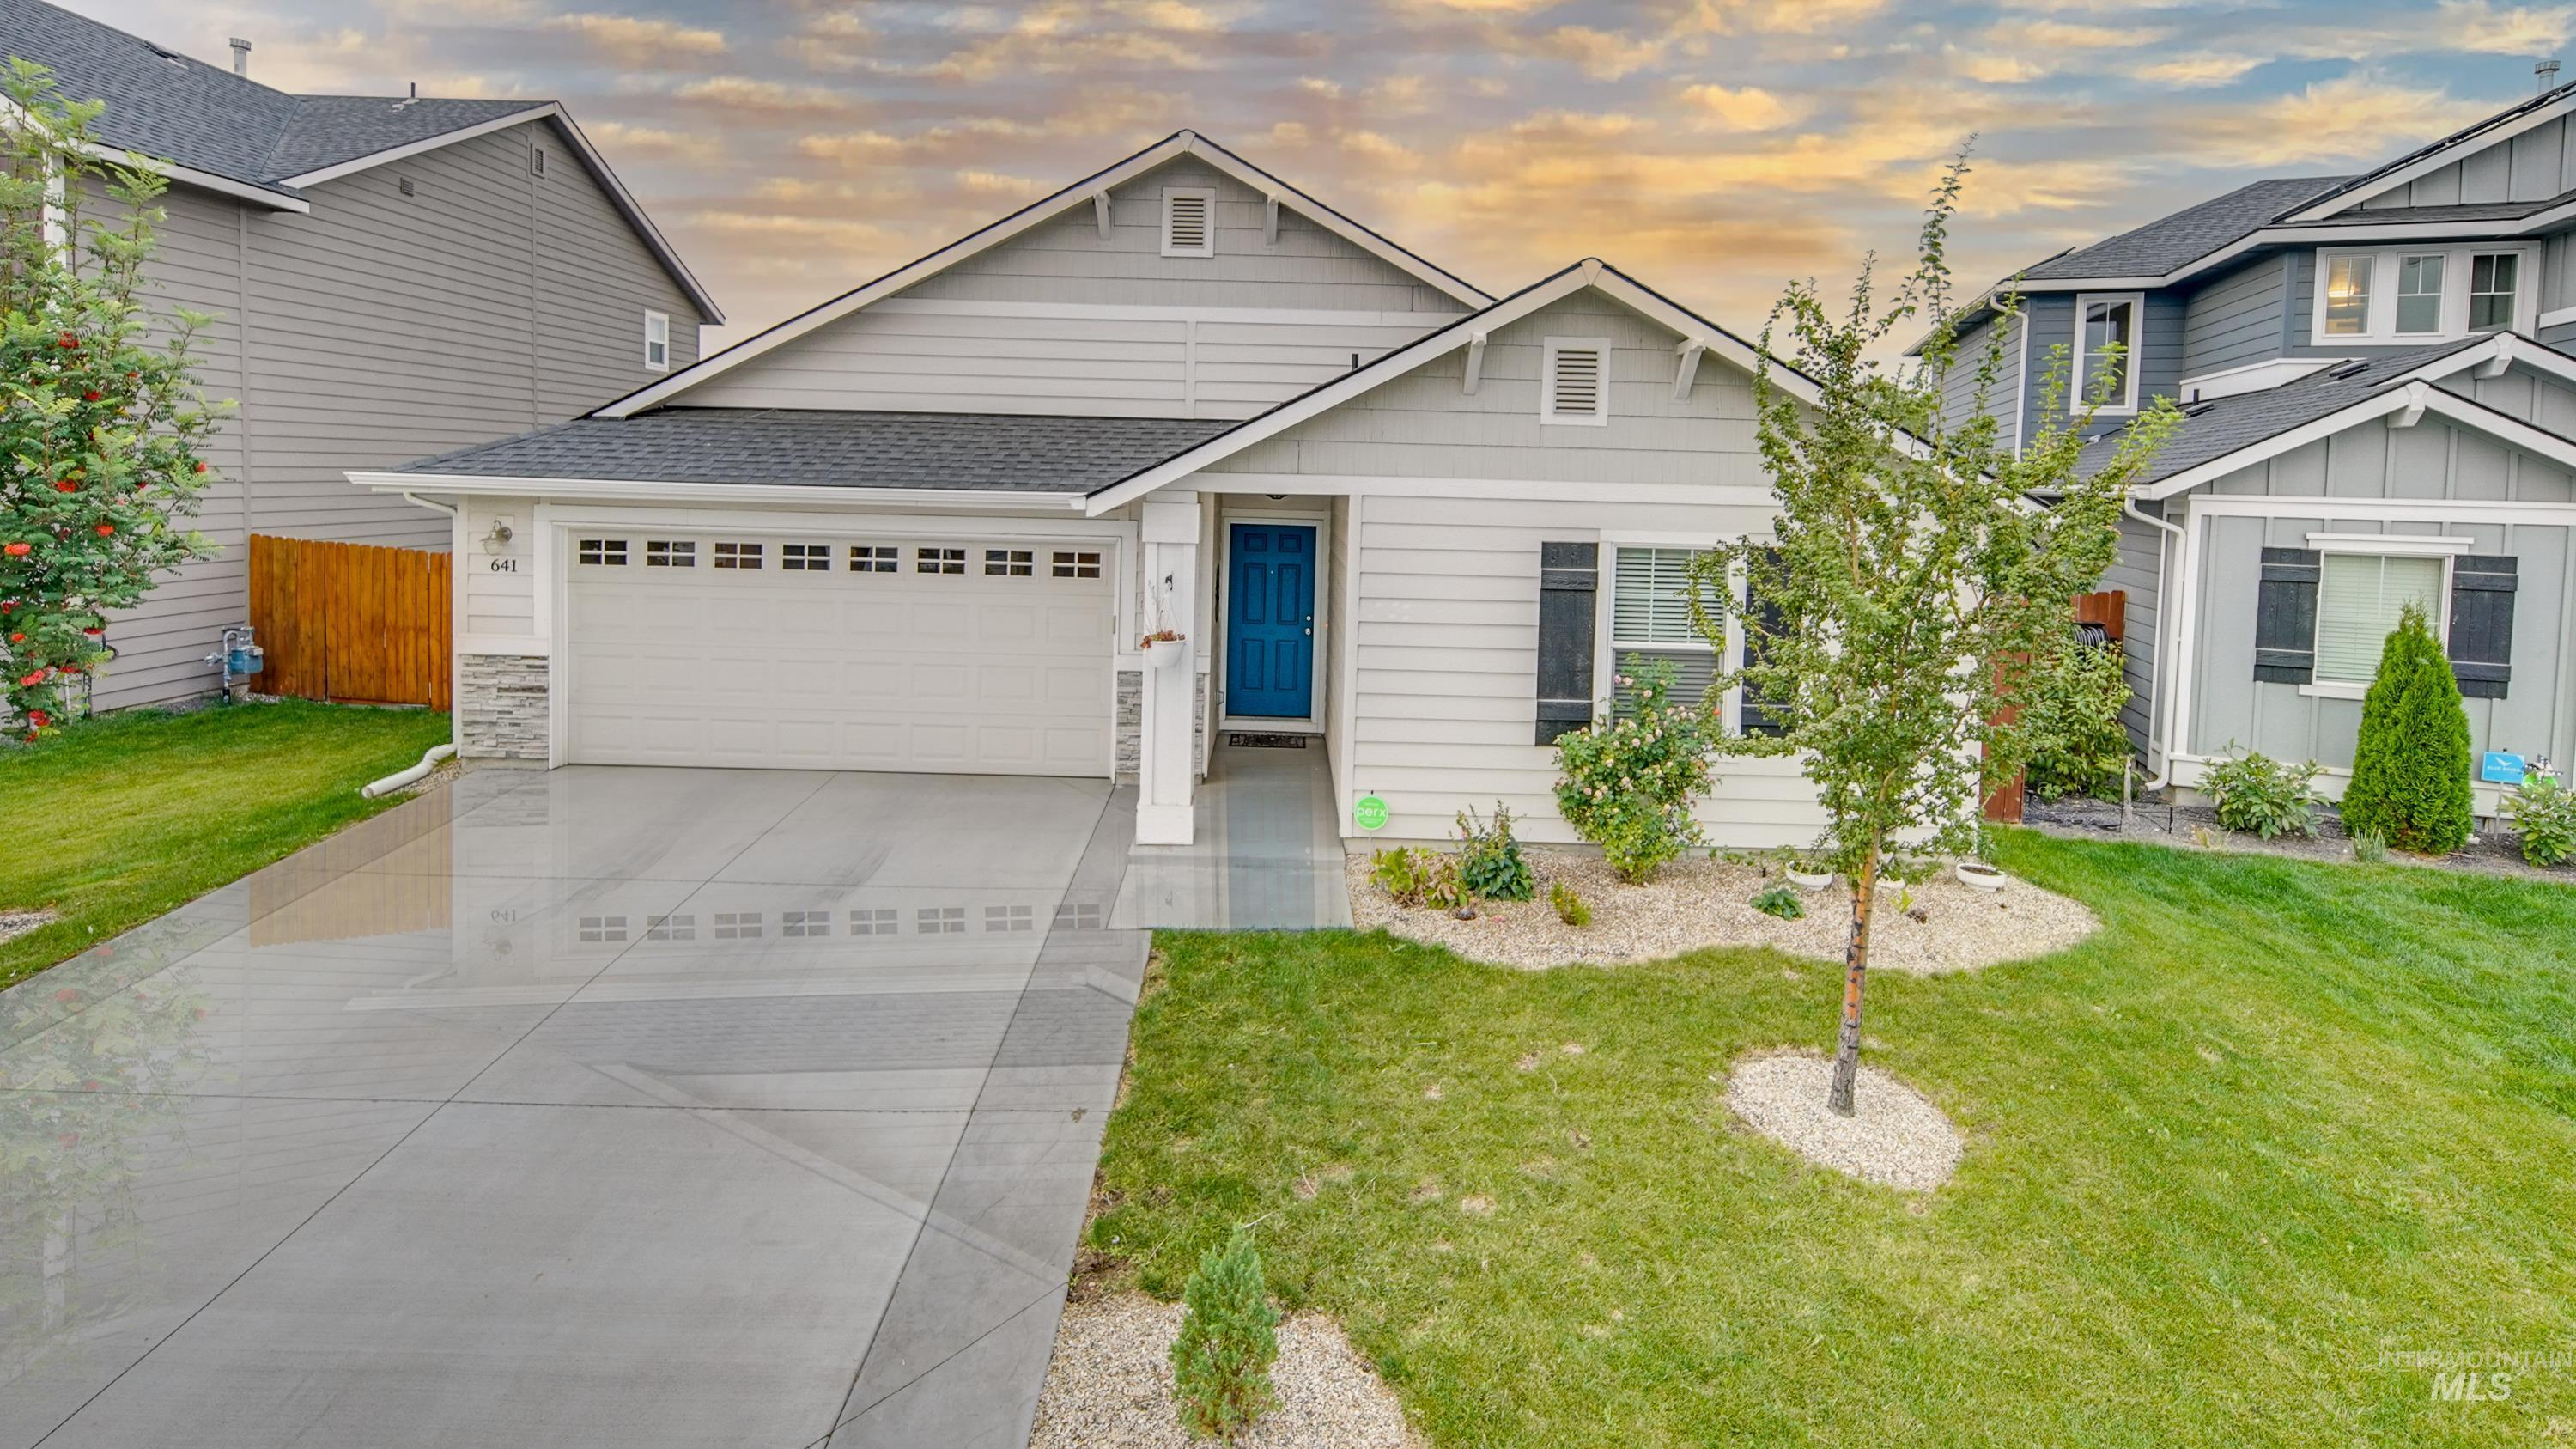 Come take a look at this well cared for home, plenty of natural light, Backyard has a nice deck for relaxing with no back neighbors. This home boasts many upgrades, vaulted ceilings, split bedrooms, security system and a roomy functional Kitchen and new flooring. - David Faulkner, Main: 208-954-2570, Boise River Realty, LLC, Main: 208-955-6955,